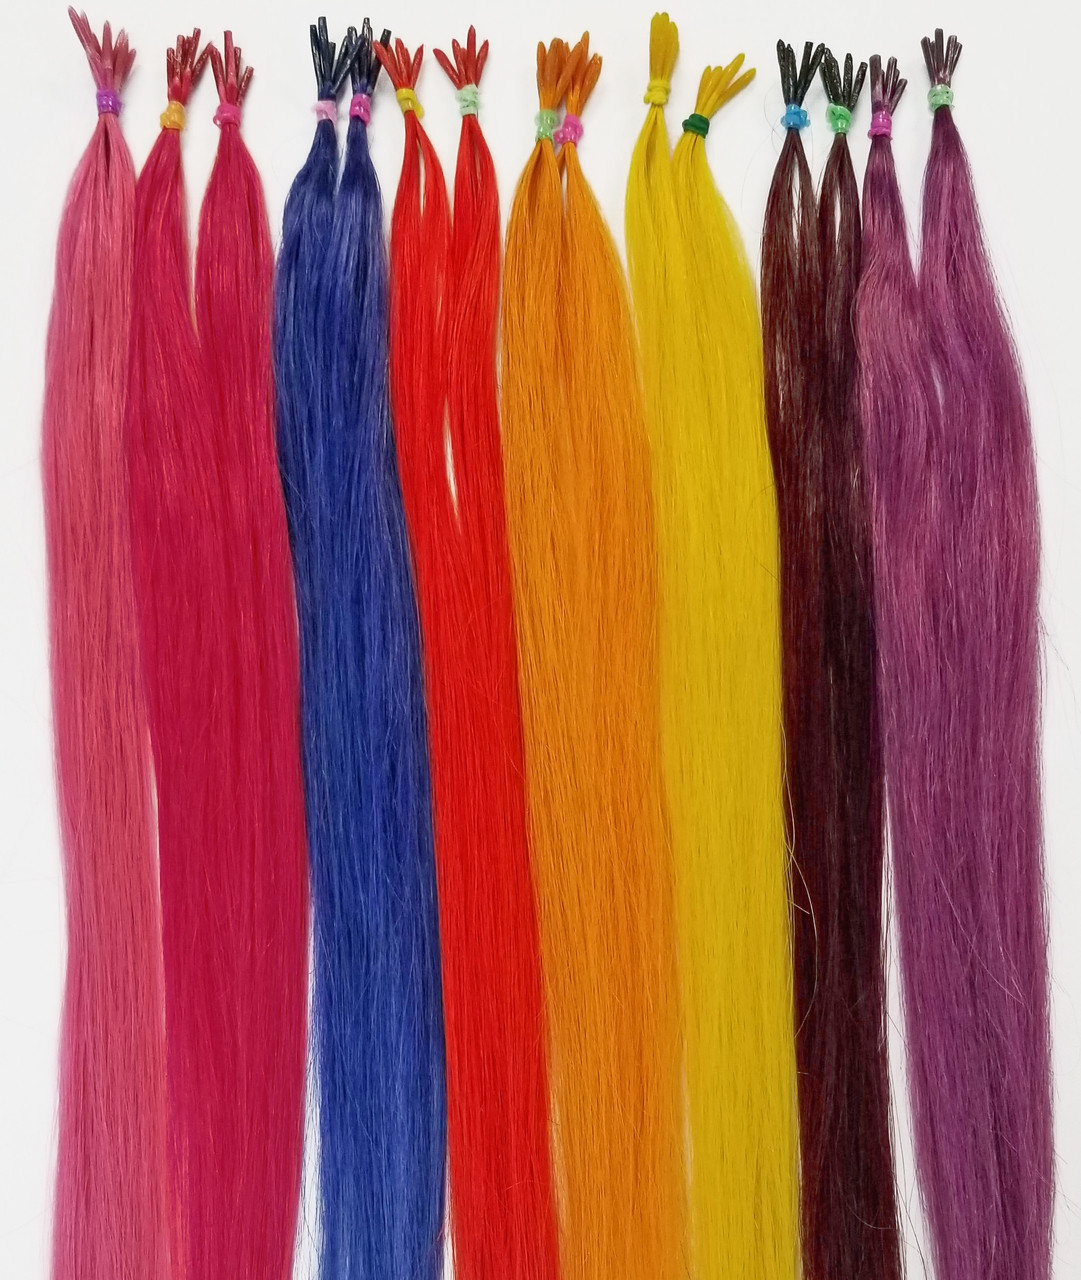 18 Colored Hair Extensions I Tip Fantasy Color Hair Extensions